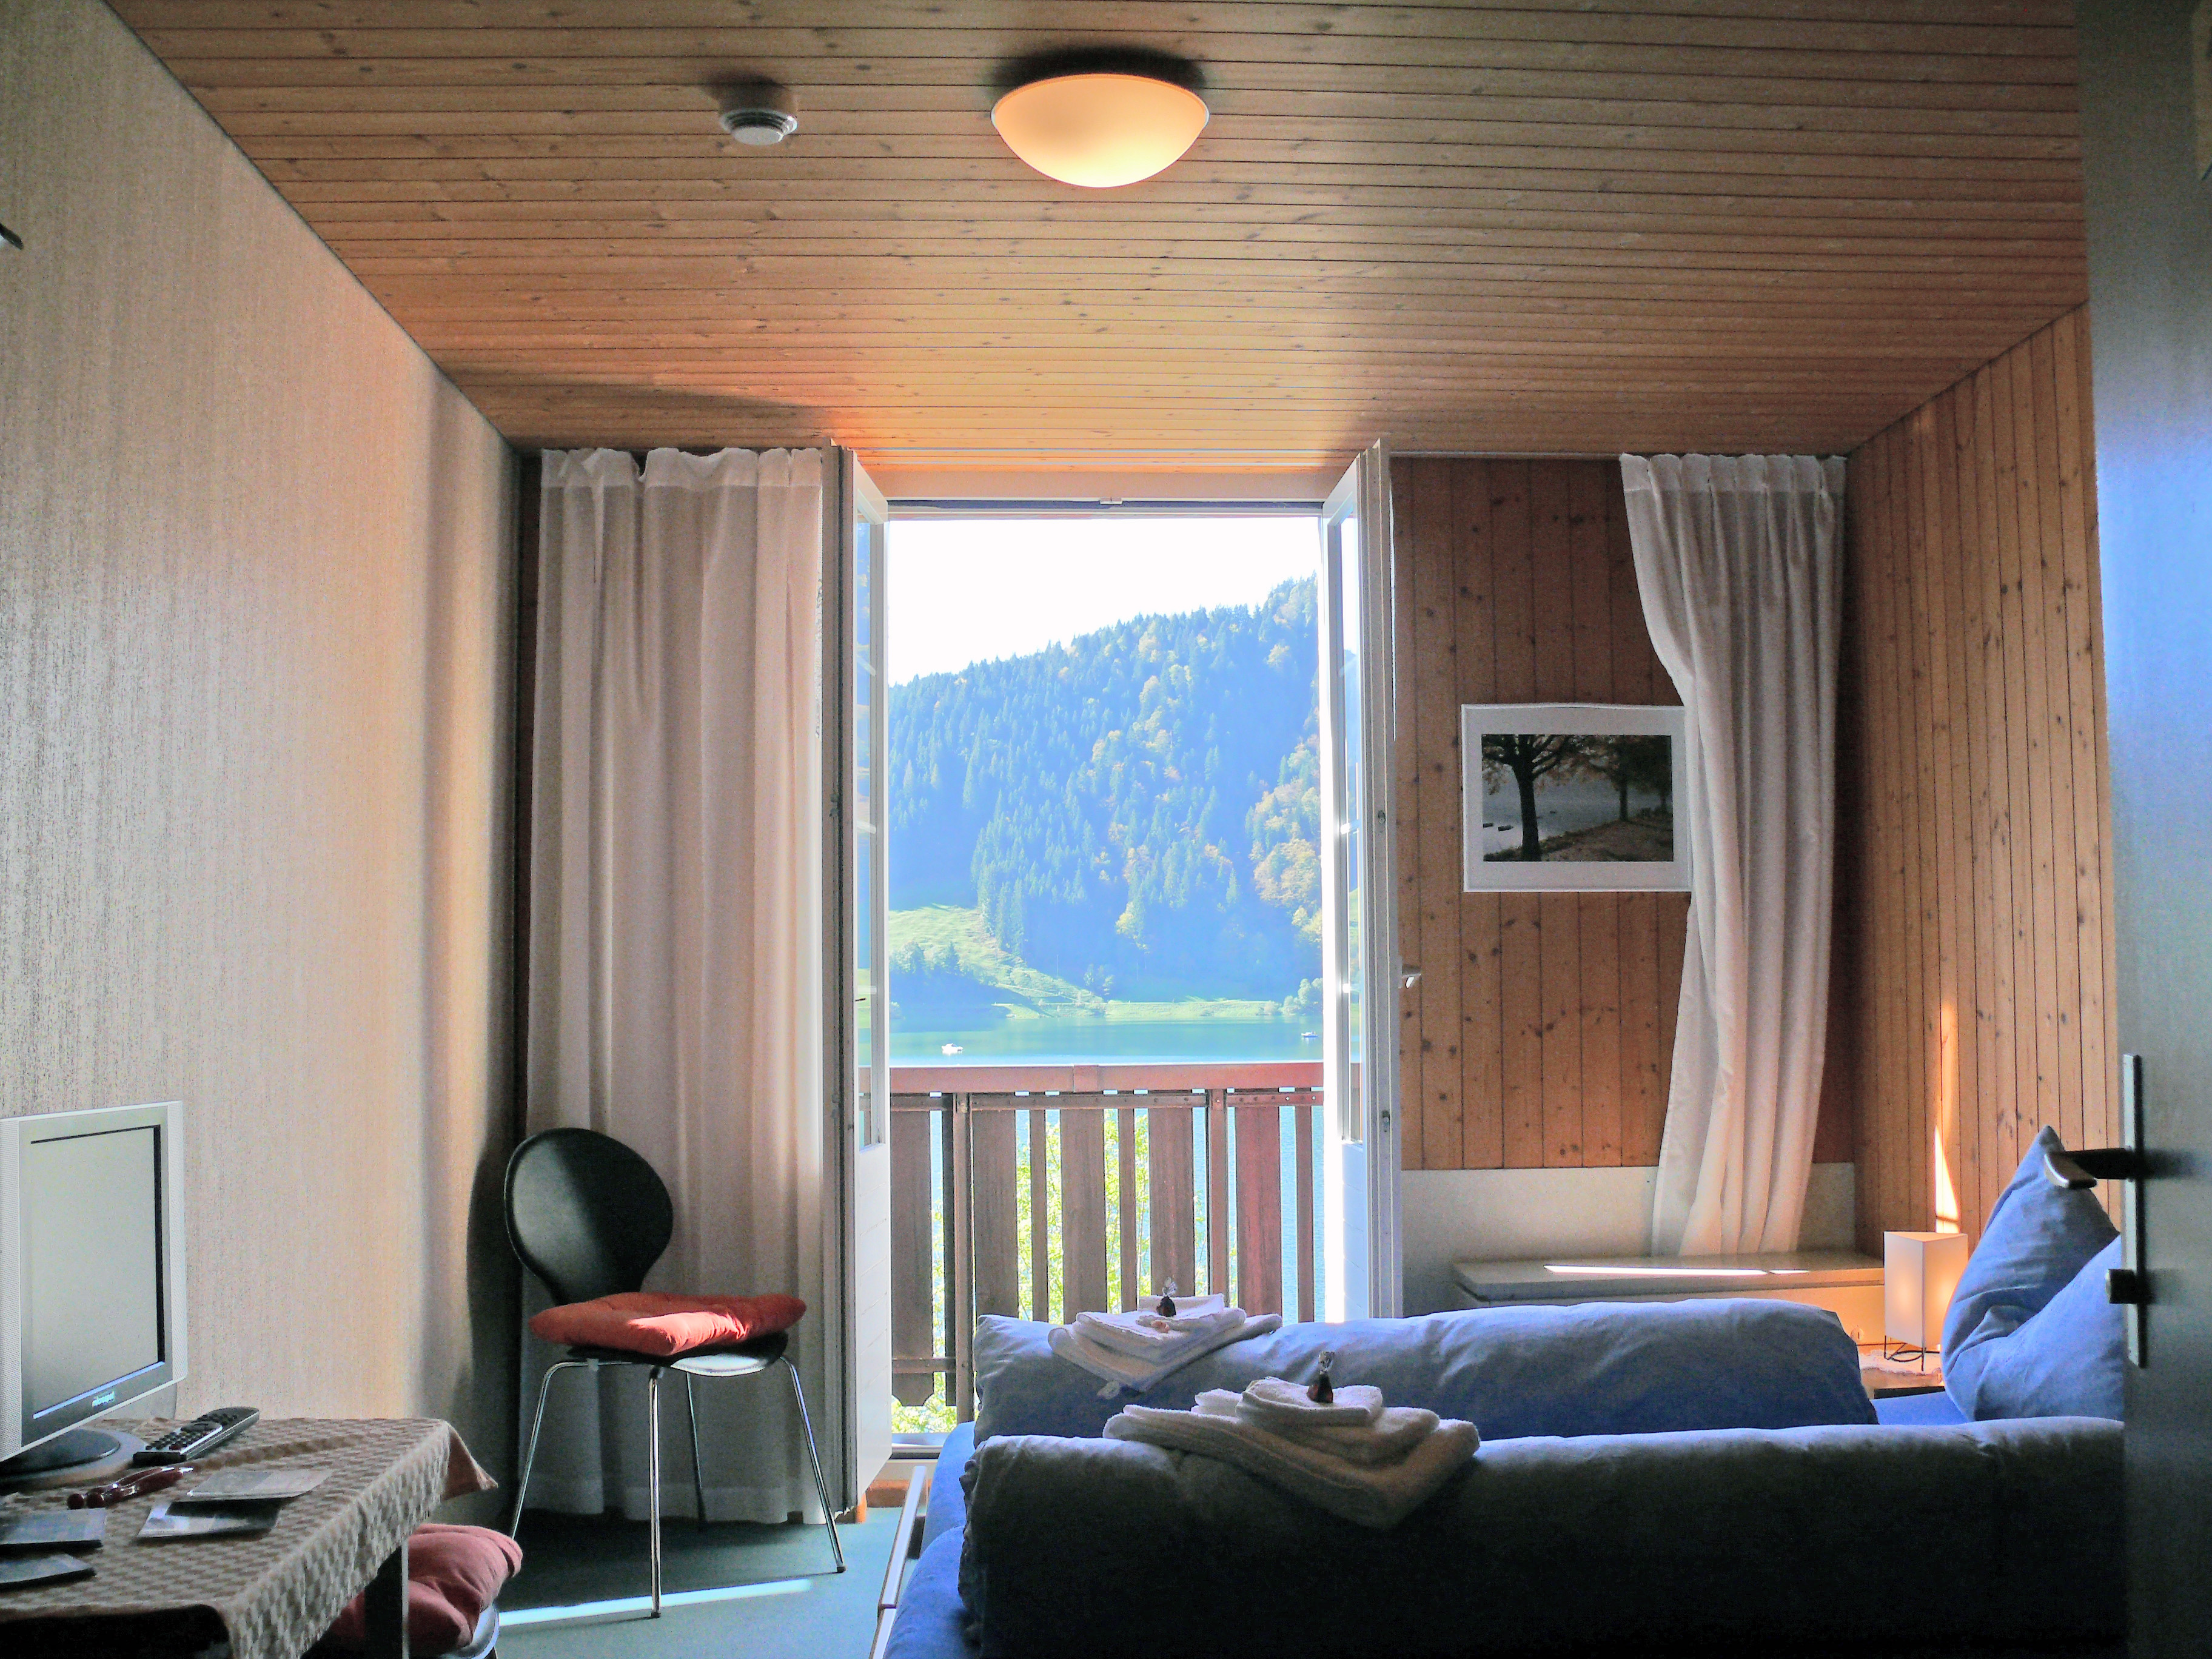 Gasthaus Hotel Stausee - rooms lookup 6